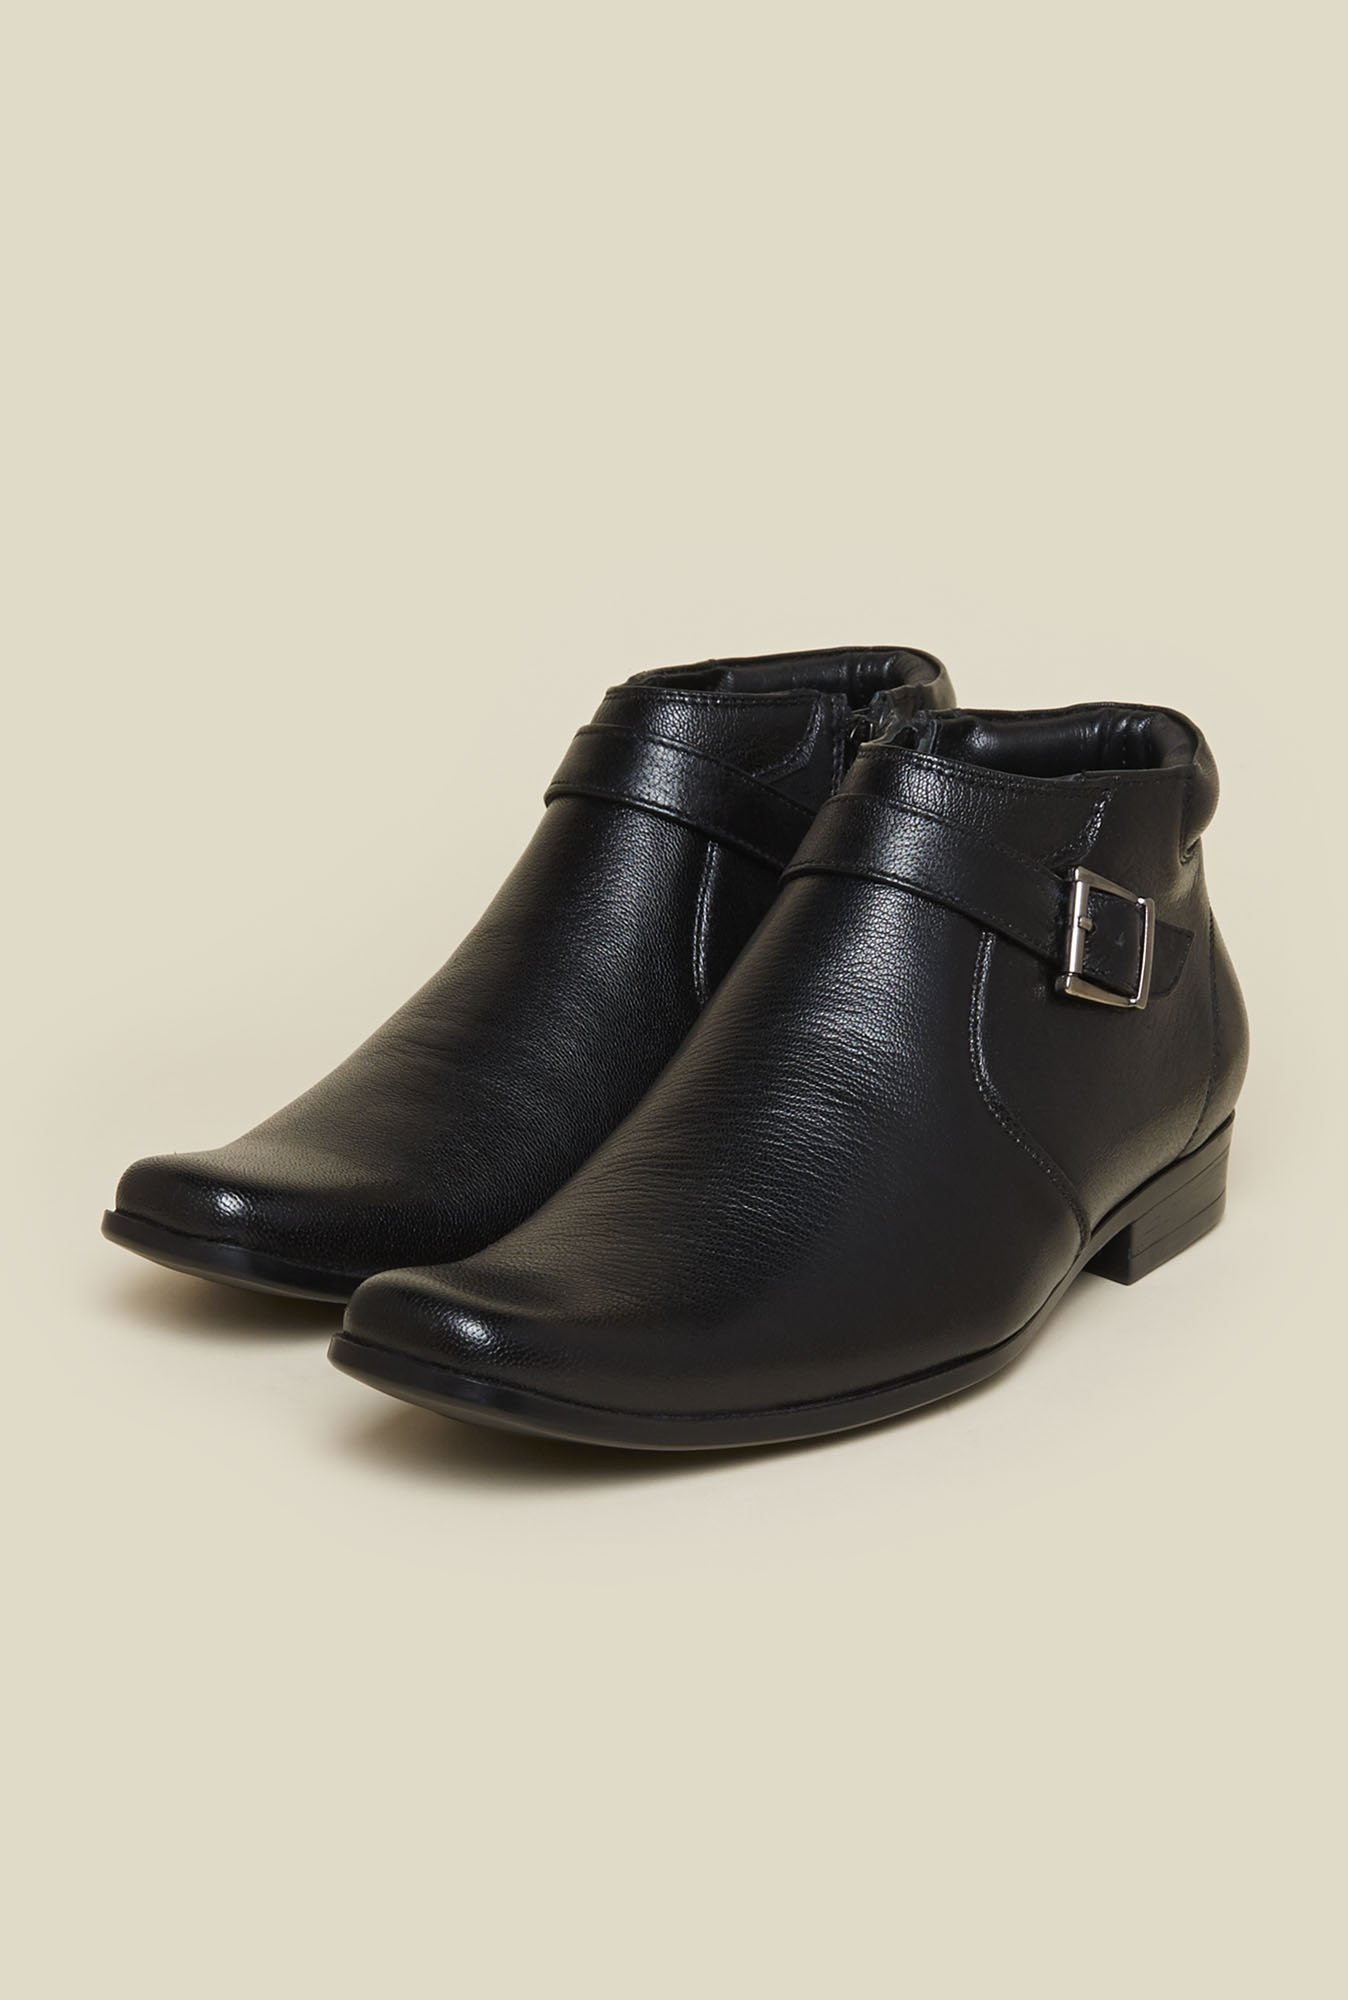 Mochi Black Leather Formal Boots